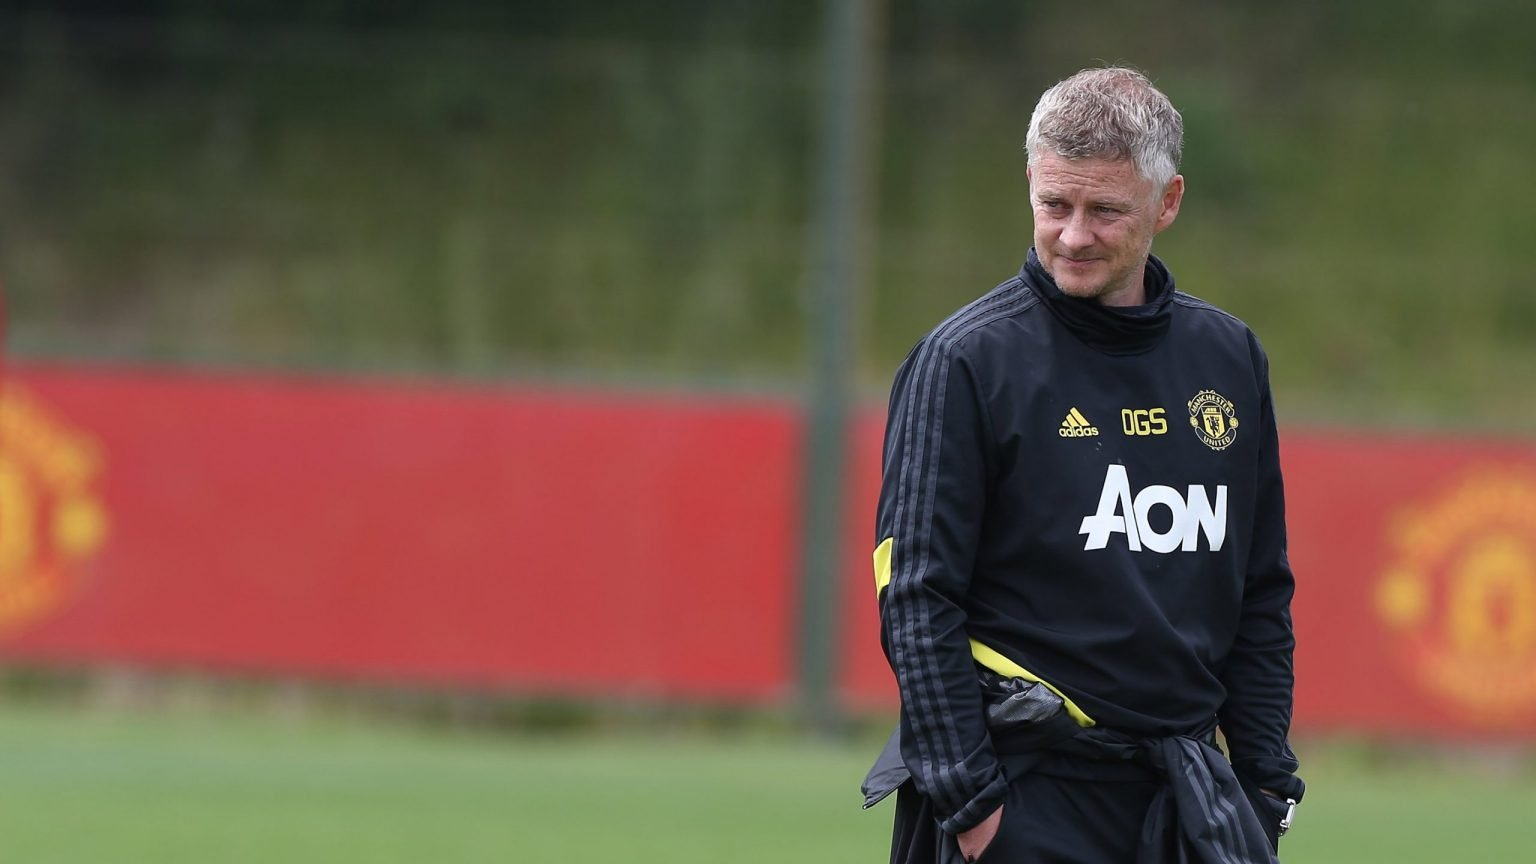 Transfer: Solskjaer reveals player that will join Manchester United in January